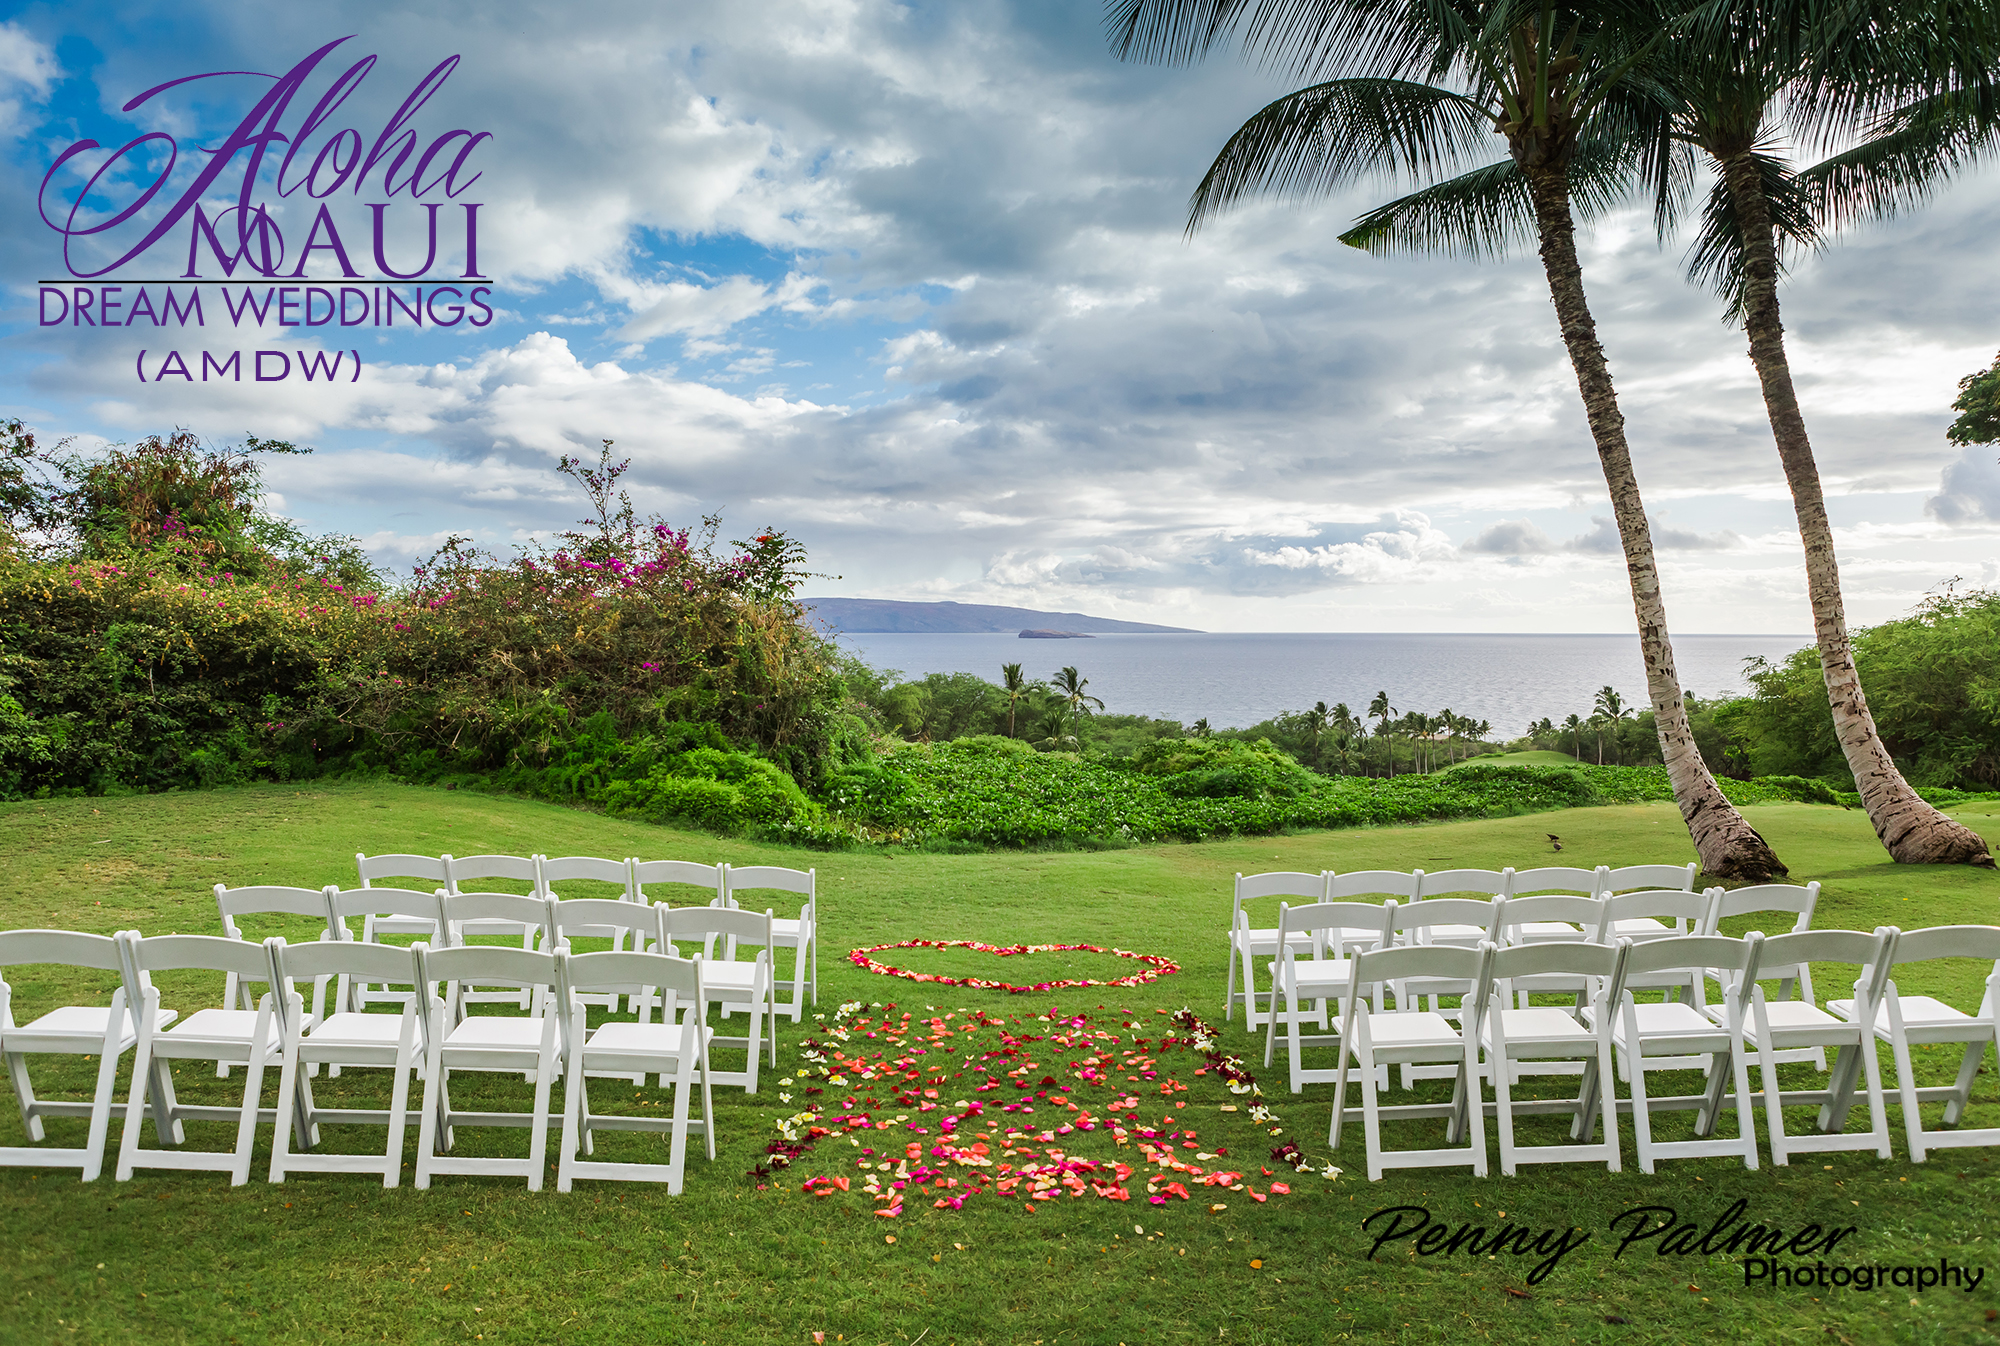 Maui wedding venues aloha maui dream weddings maui wedding venues junglespirit